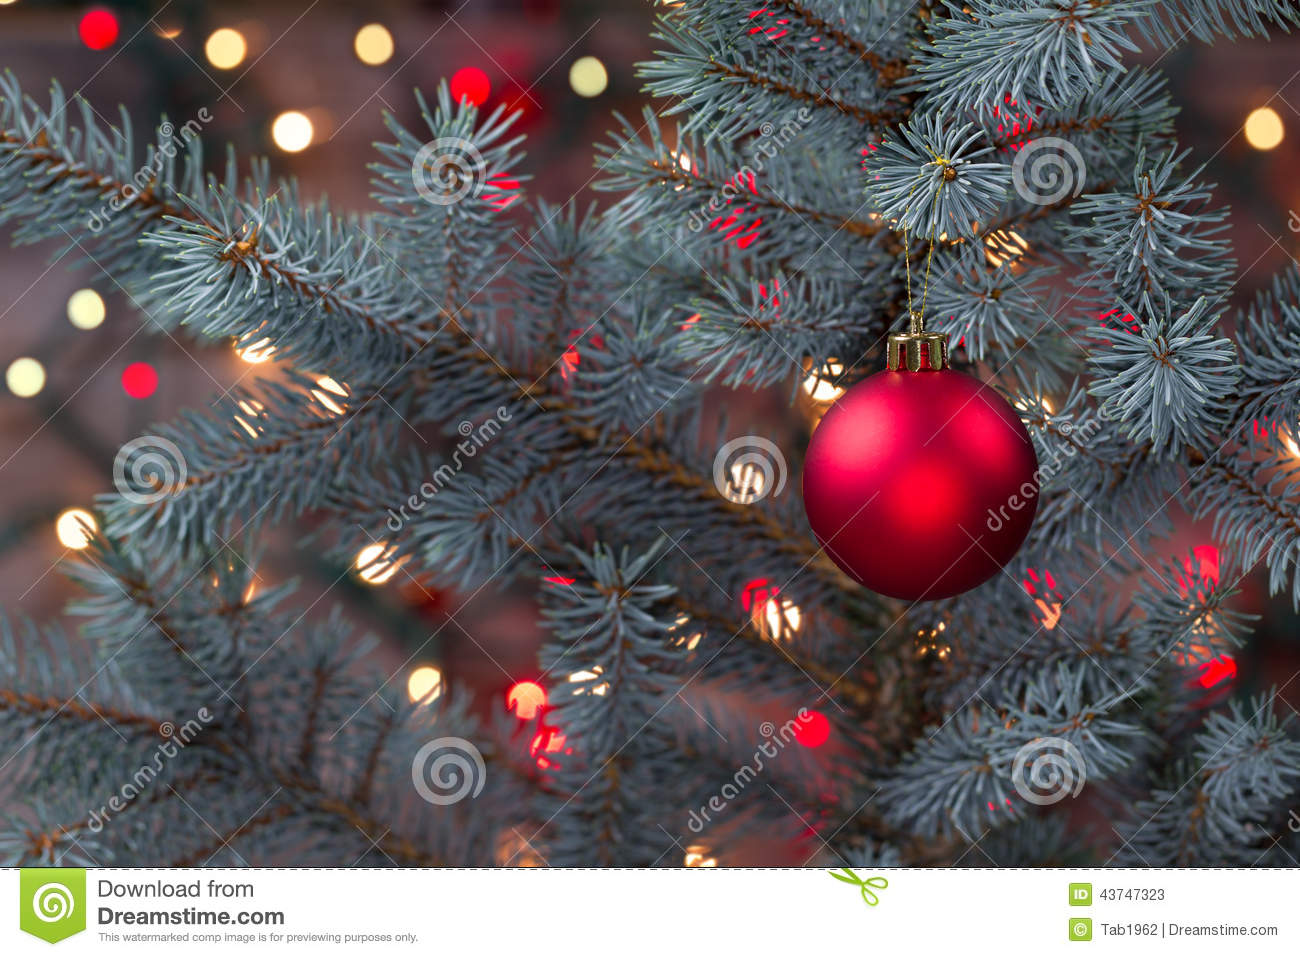 Single Red Ornament Hanging From Pine Tree With Glowing